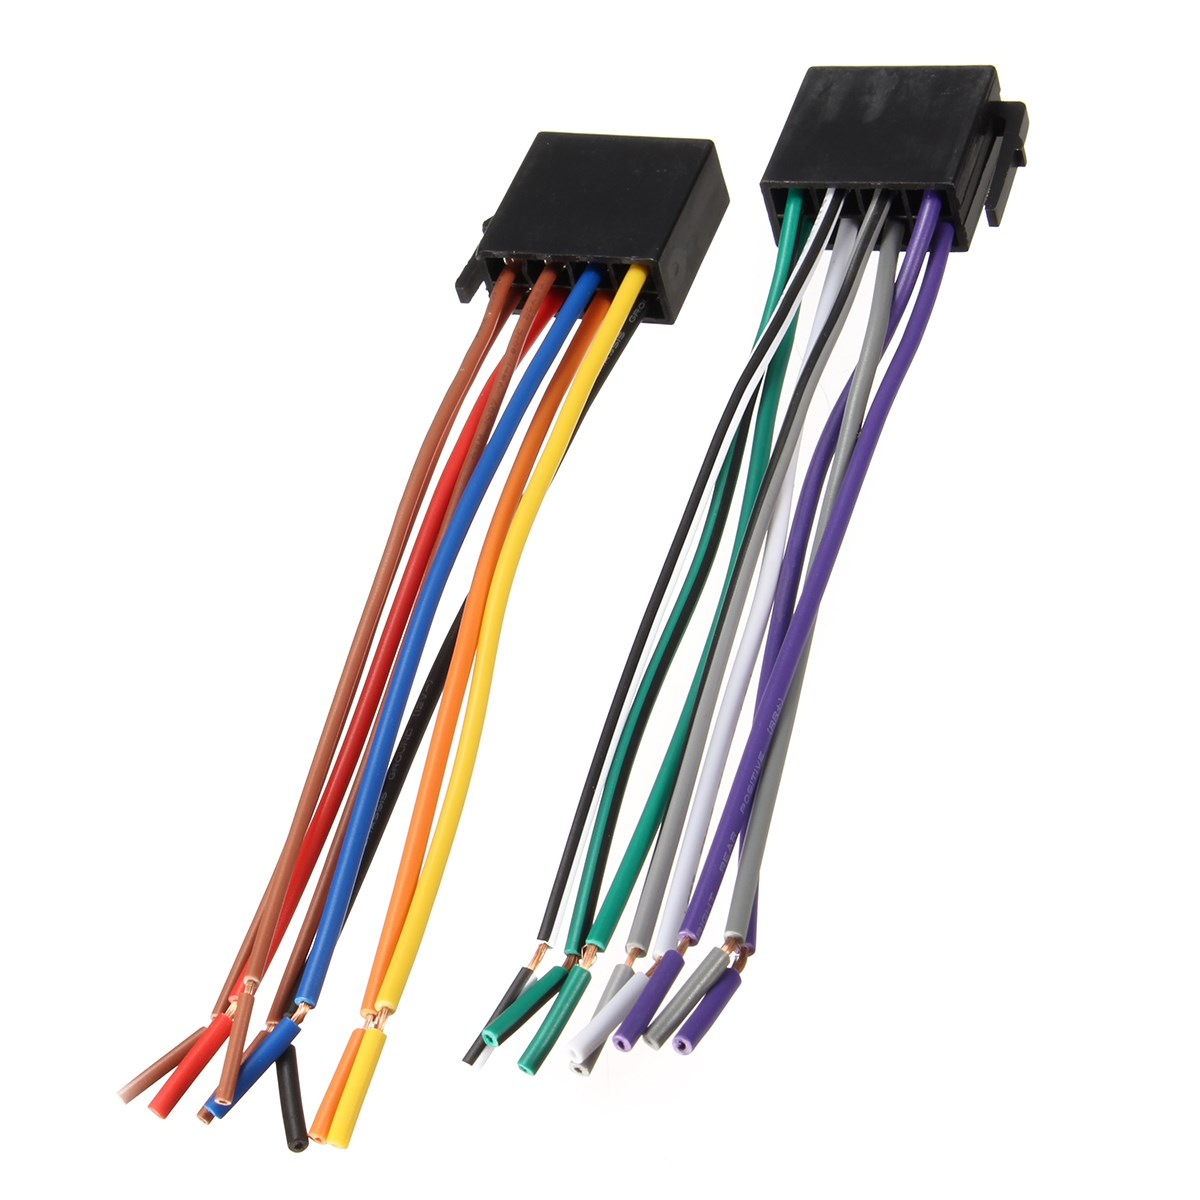 Universal Wire Harness Adapter Connector Cable Radio Wiring Connector Plug for Auto Car Stereo System universal wire harness adapter connector cable radio wiring universal radio wiring harness at aneh.co